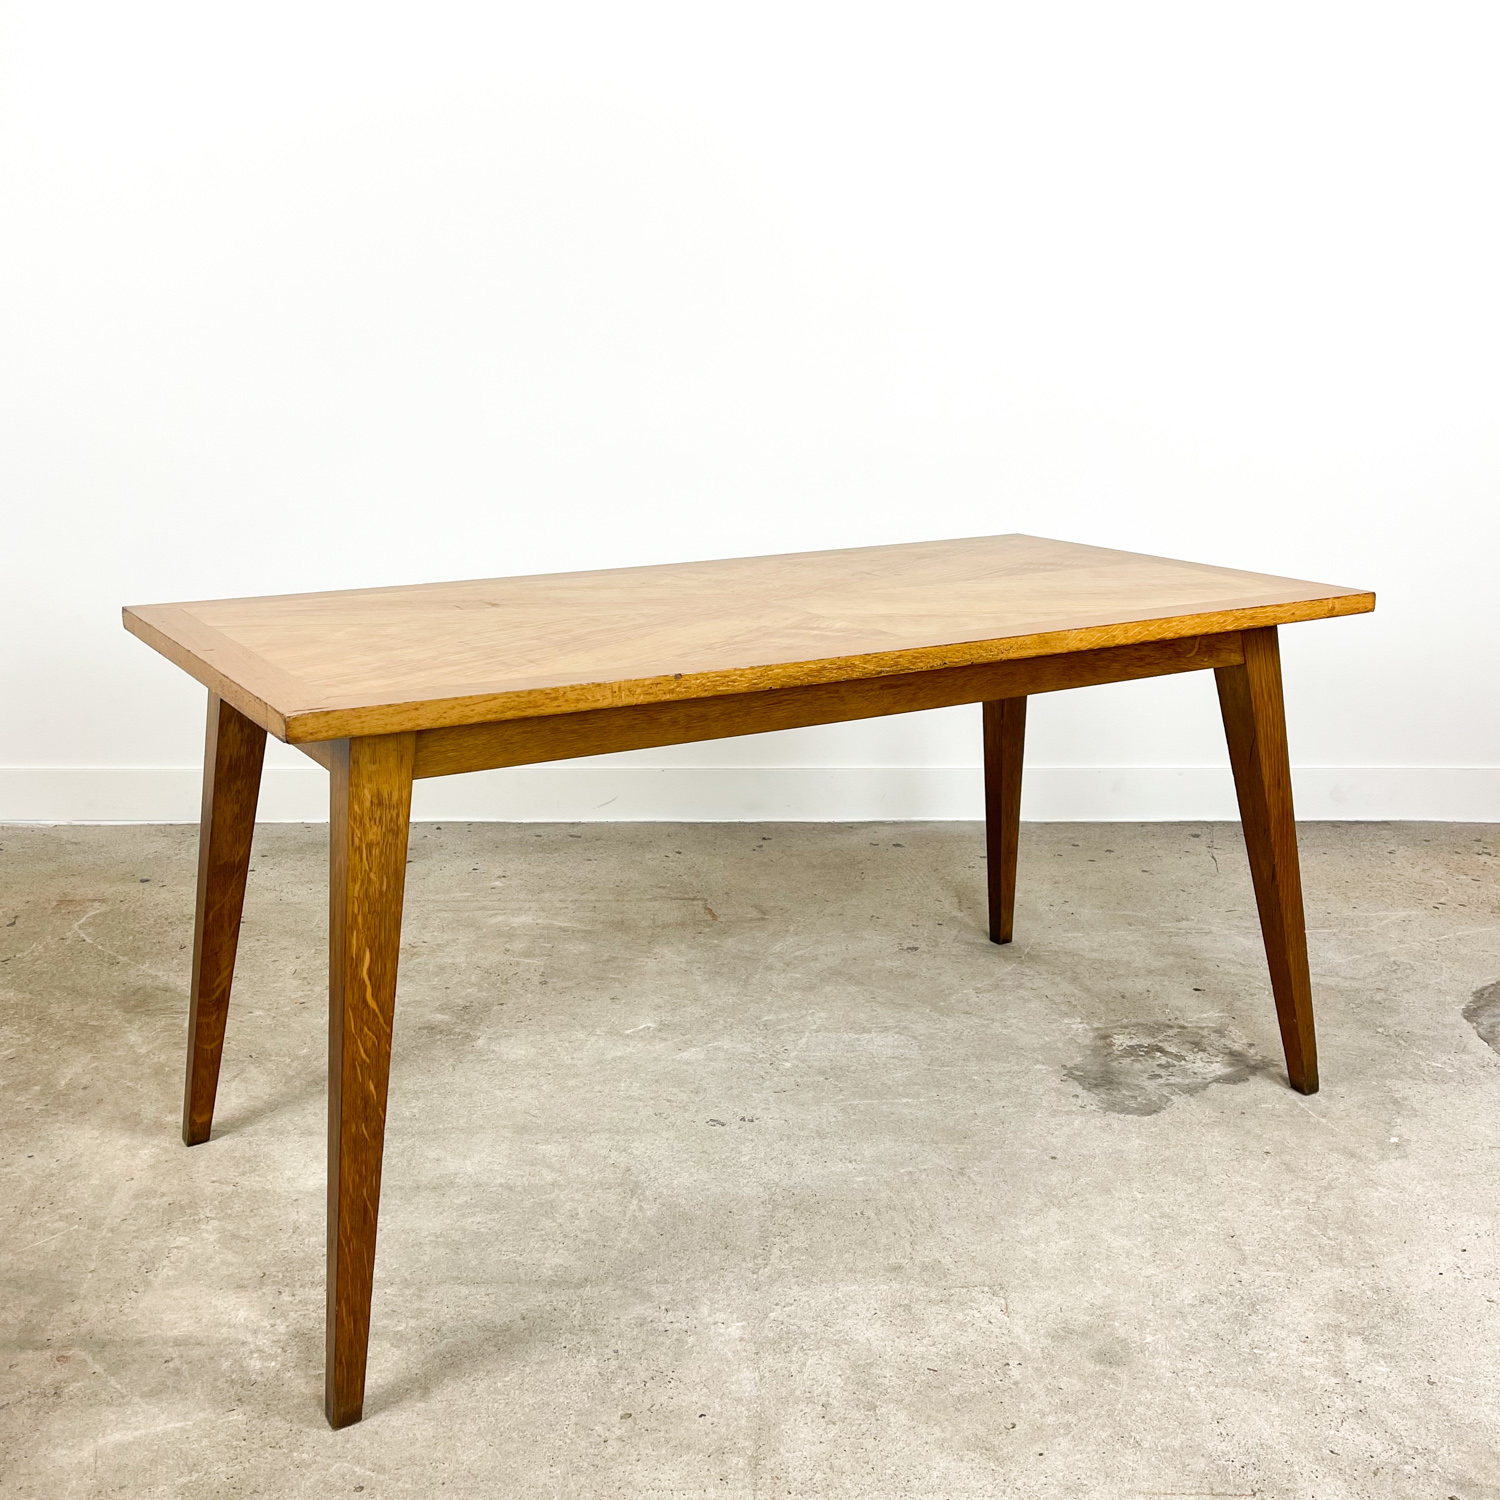 Vintage retro dining table